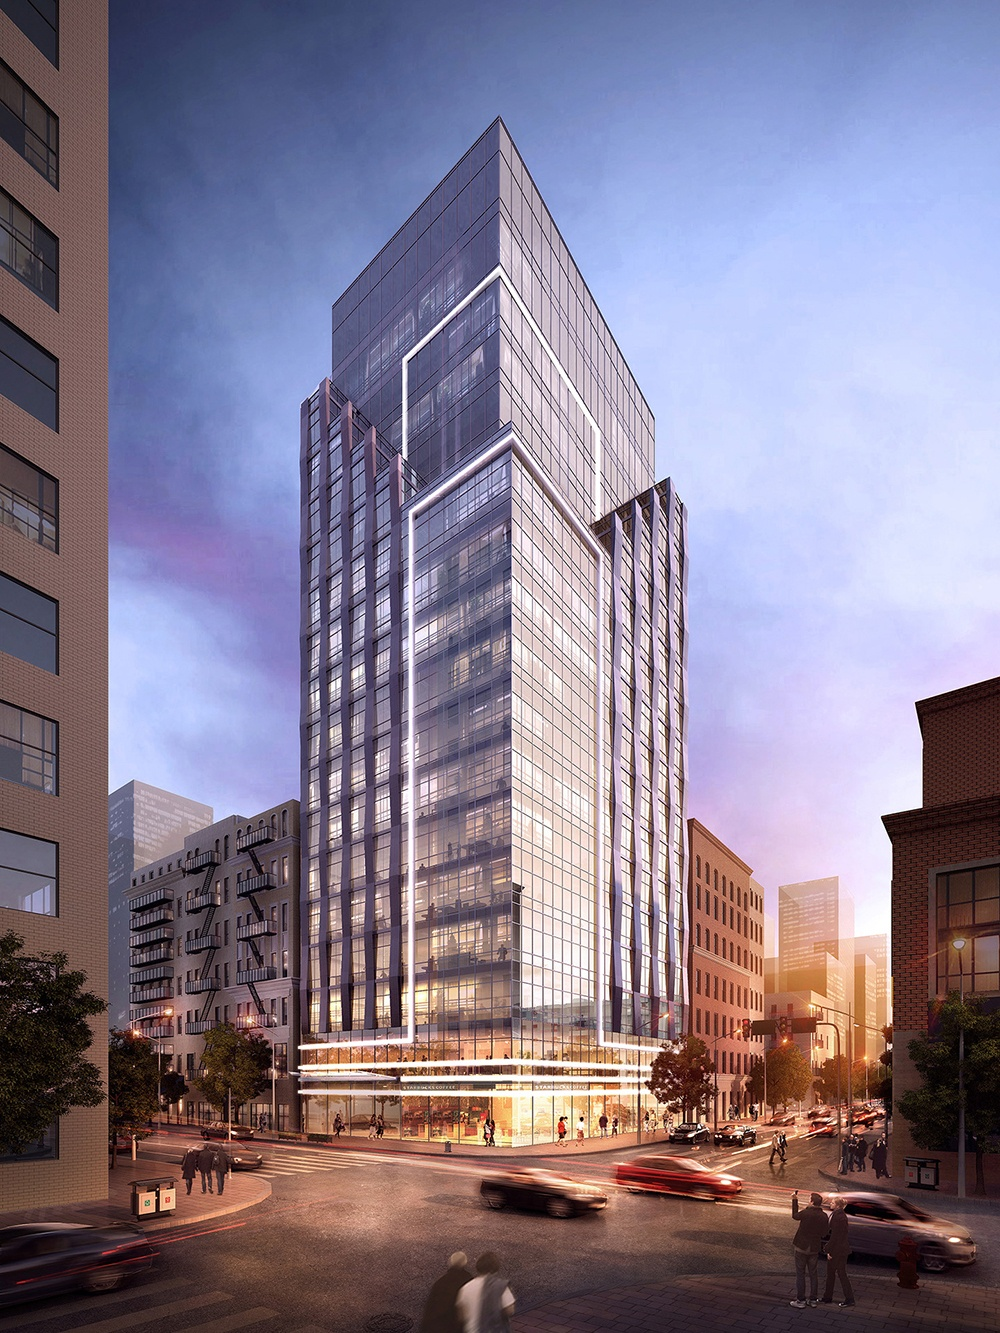 GEA Projects in the News: Seeing Green at 200 East 21st Street!